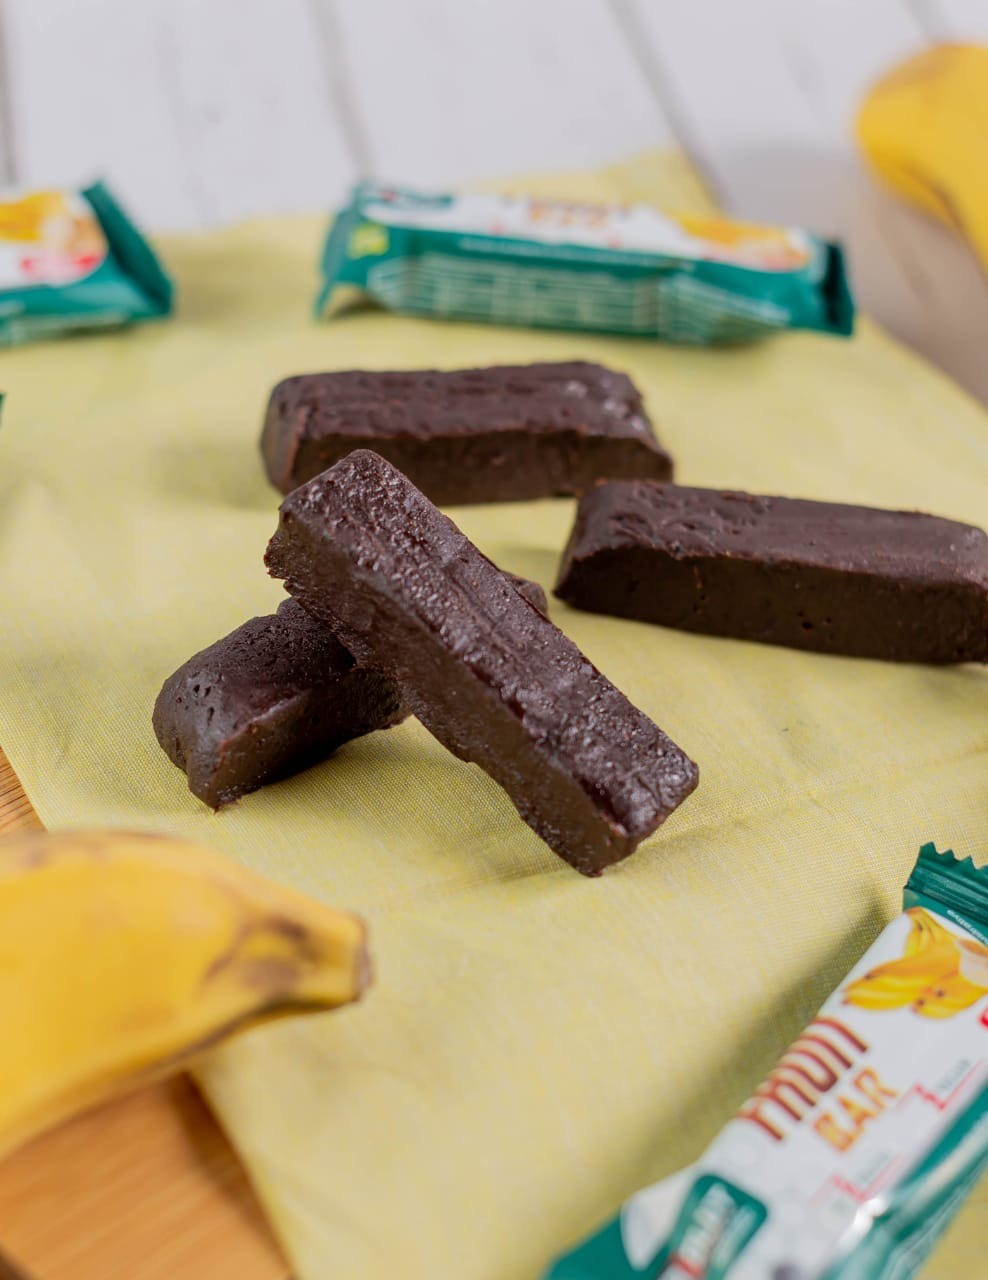 BARRA DE FRUTA FRUIT BAR BANANA + CHIA E LINHAÇA - ABS NUTRITION